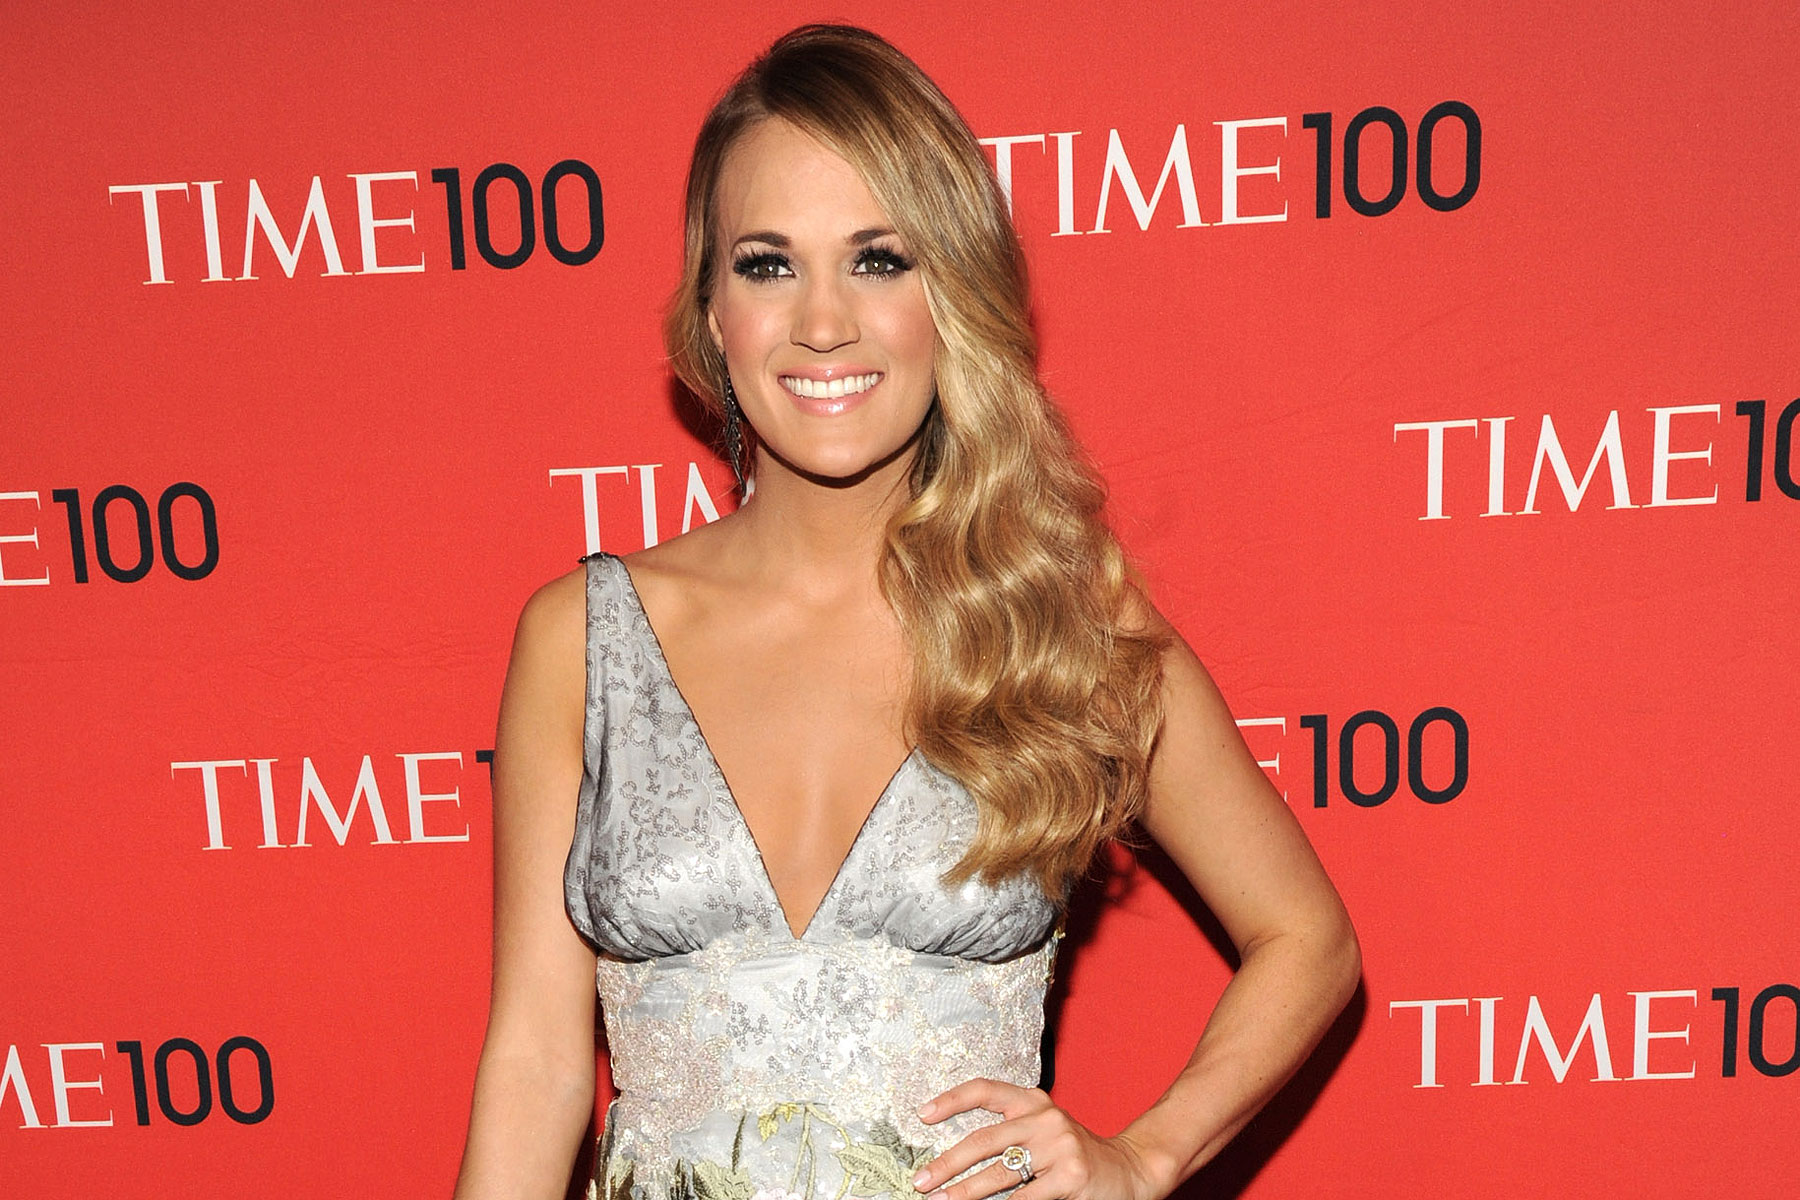 Carrie Underwood attends the TIME 100 Gala, TIME's 100 most influential people in the world at Jazz at Lincoln Center on April 29, 2014 in New York City